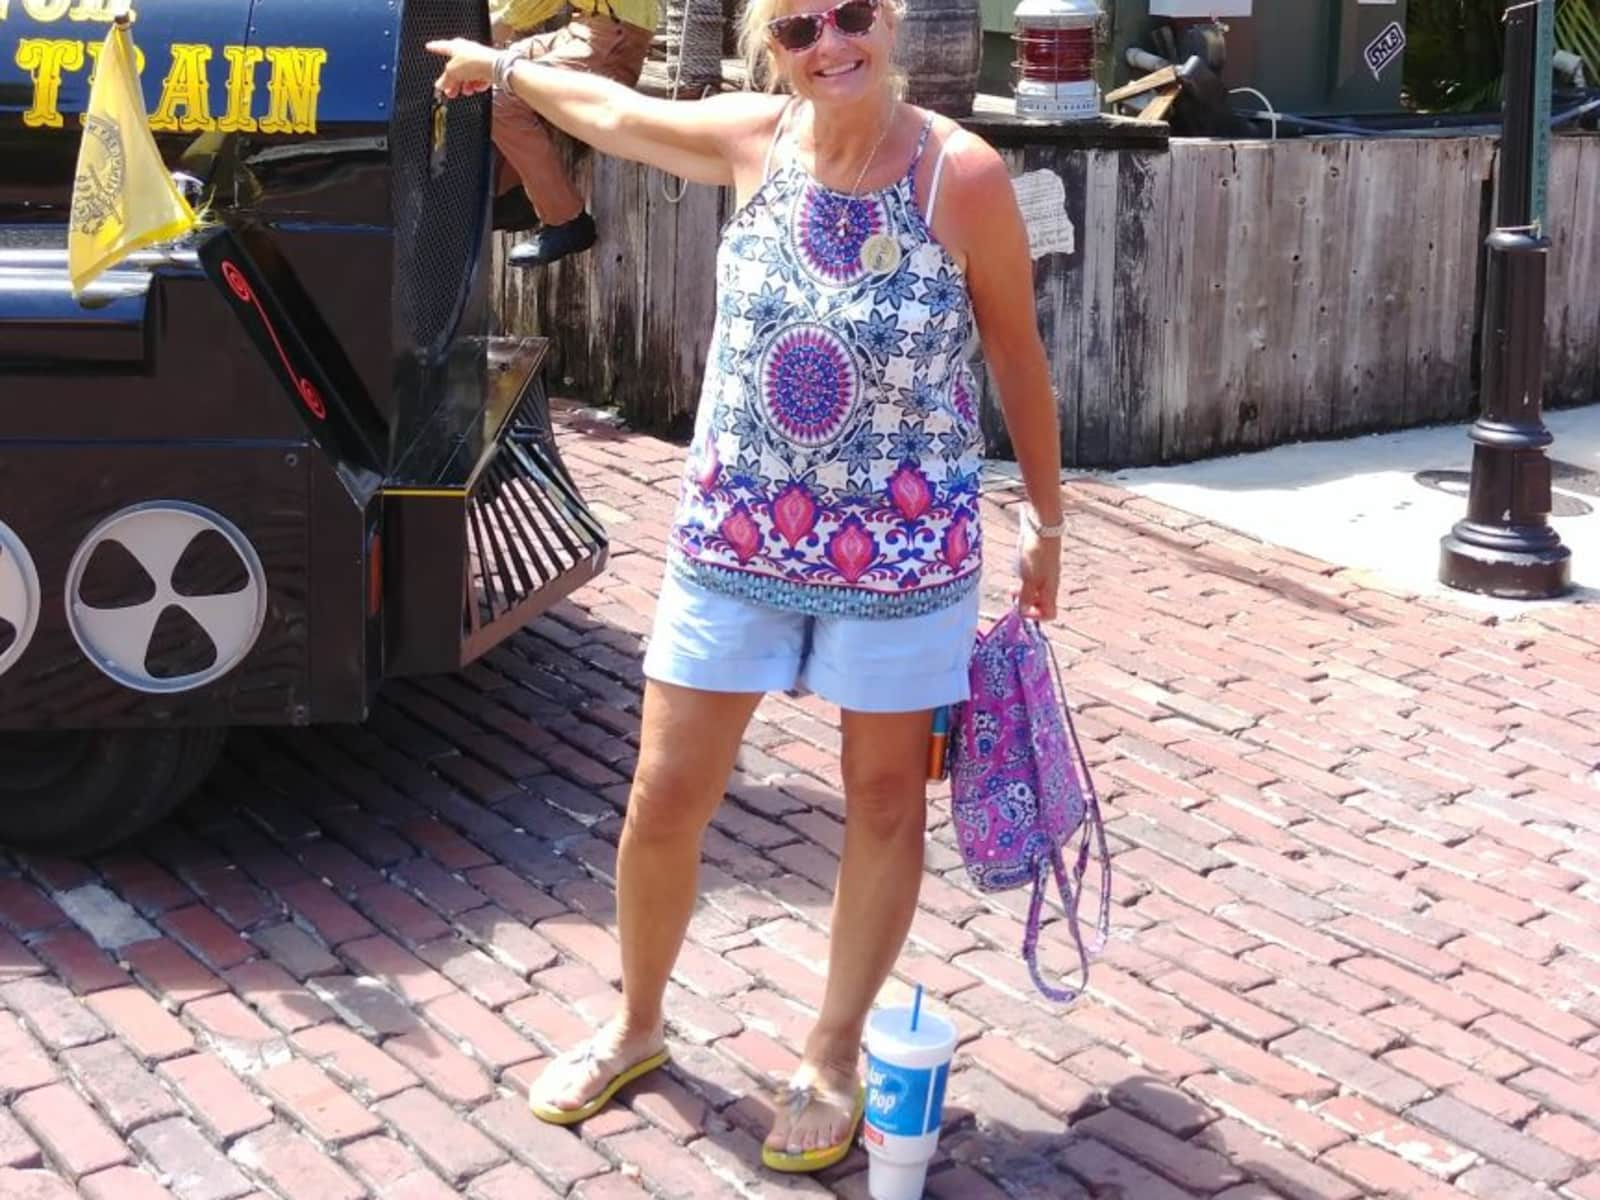 Mary jo from Louisville, Kentucky, United States